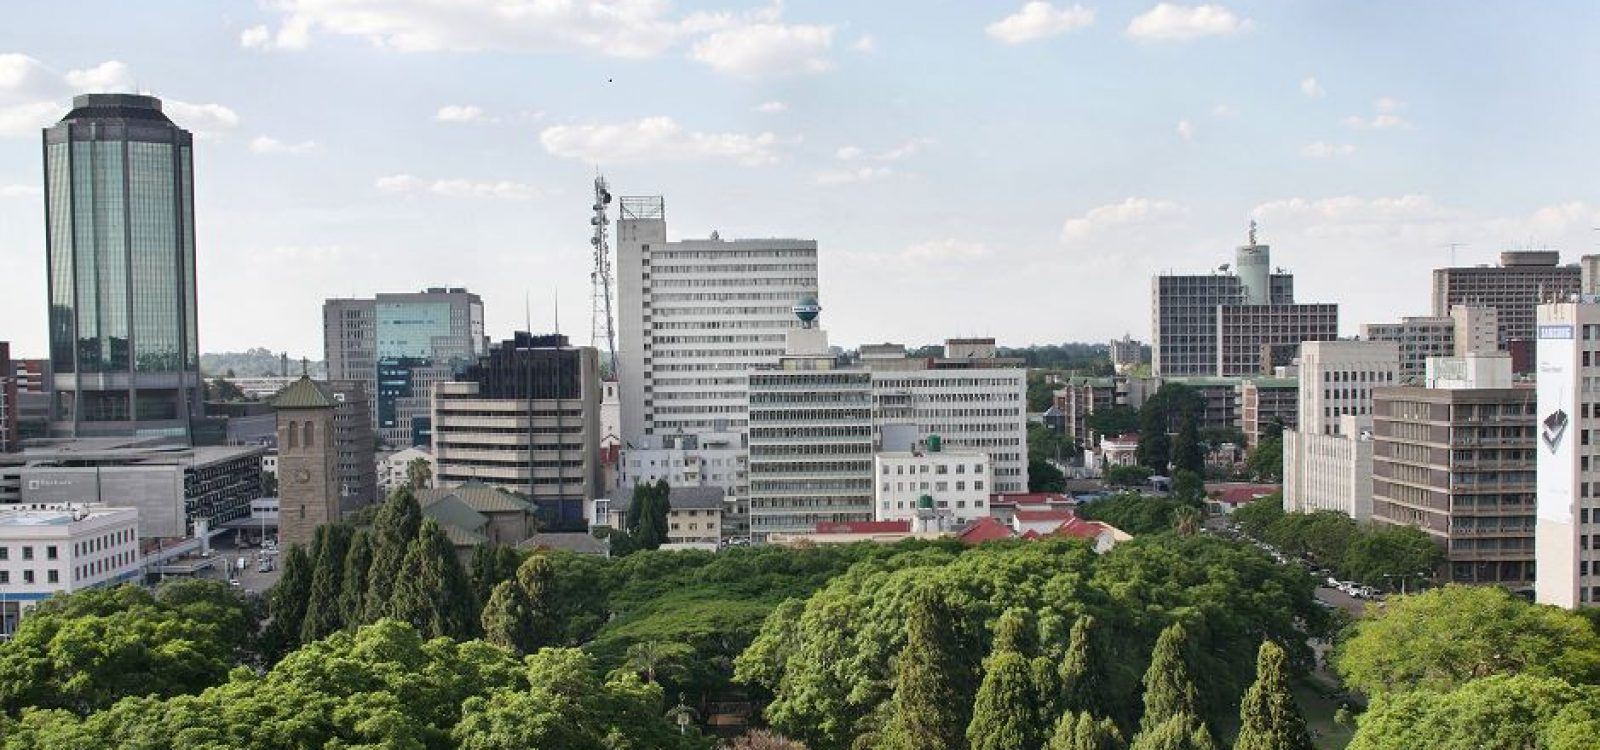 The Actuarial Profession in Zimbabwe